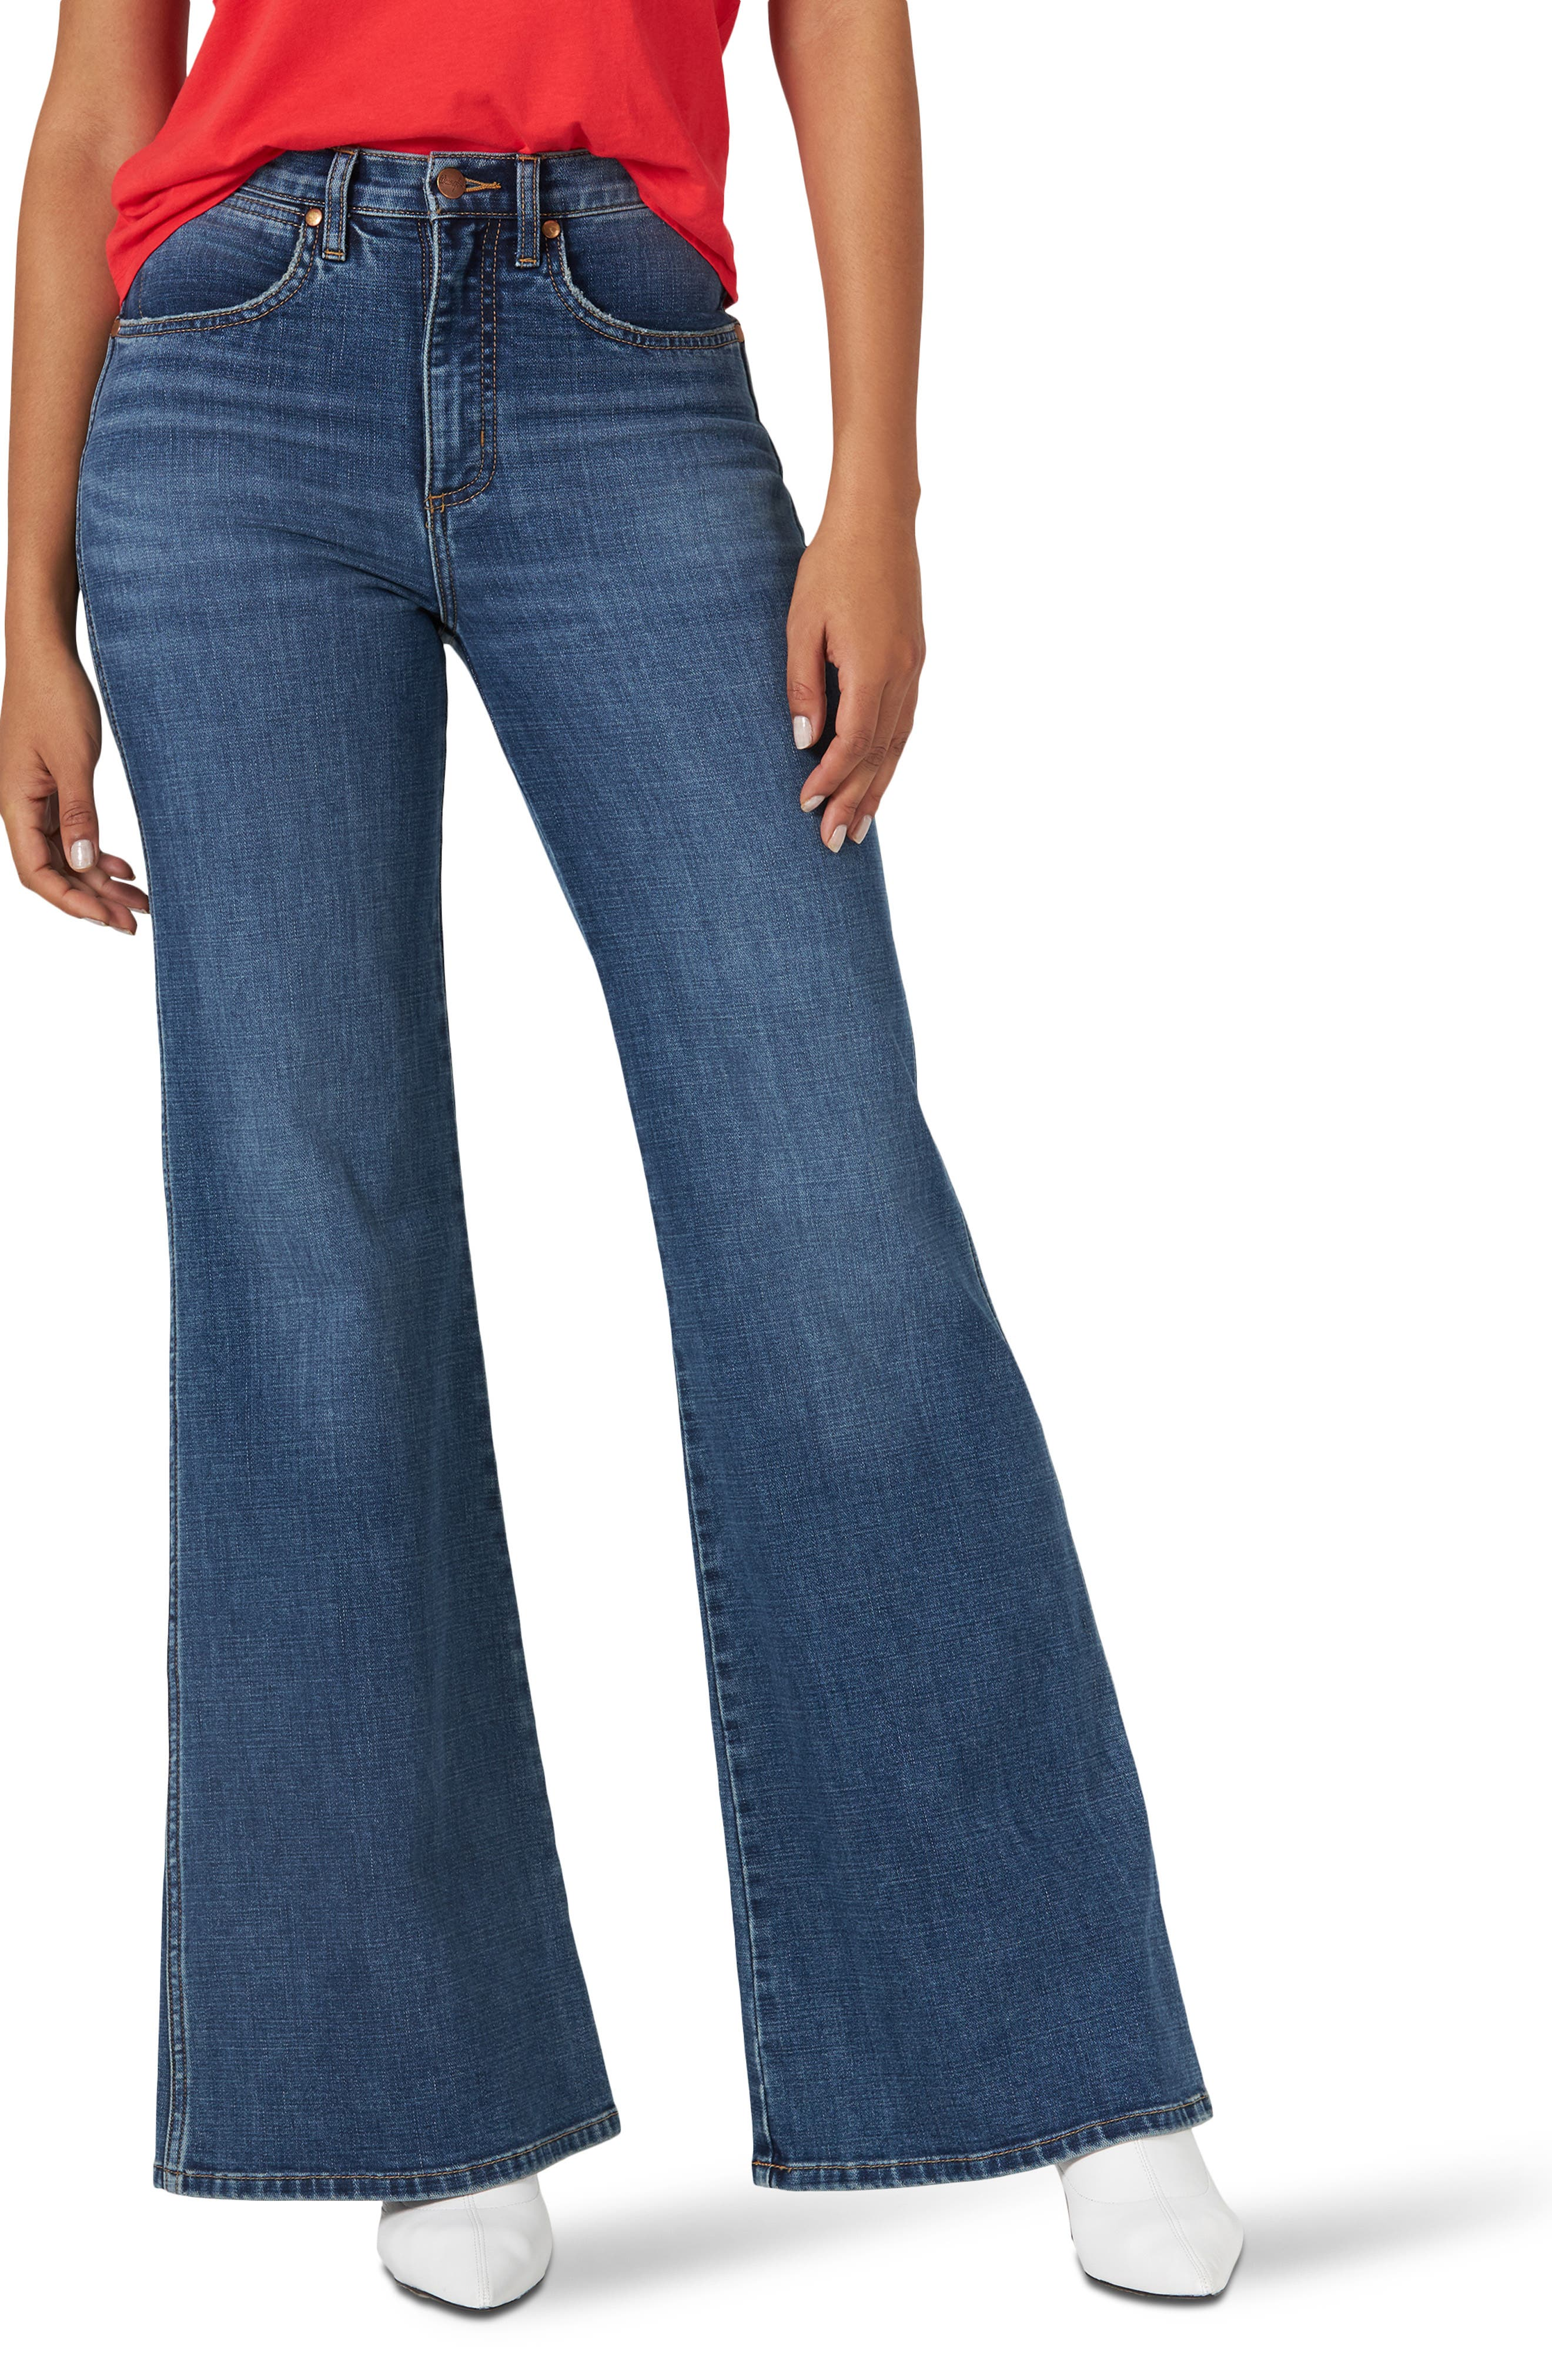 60s – 70s Pants, Jeans, Hippie, Bell Bottoms, Jumpsuits Womens Wrangler Fly High Waist Flare Jeans $128.00 AT vintagedancer.com